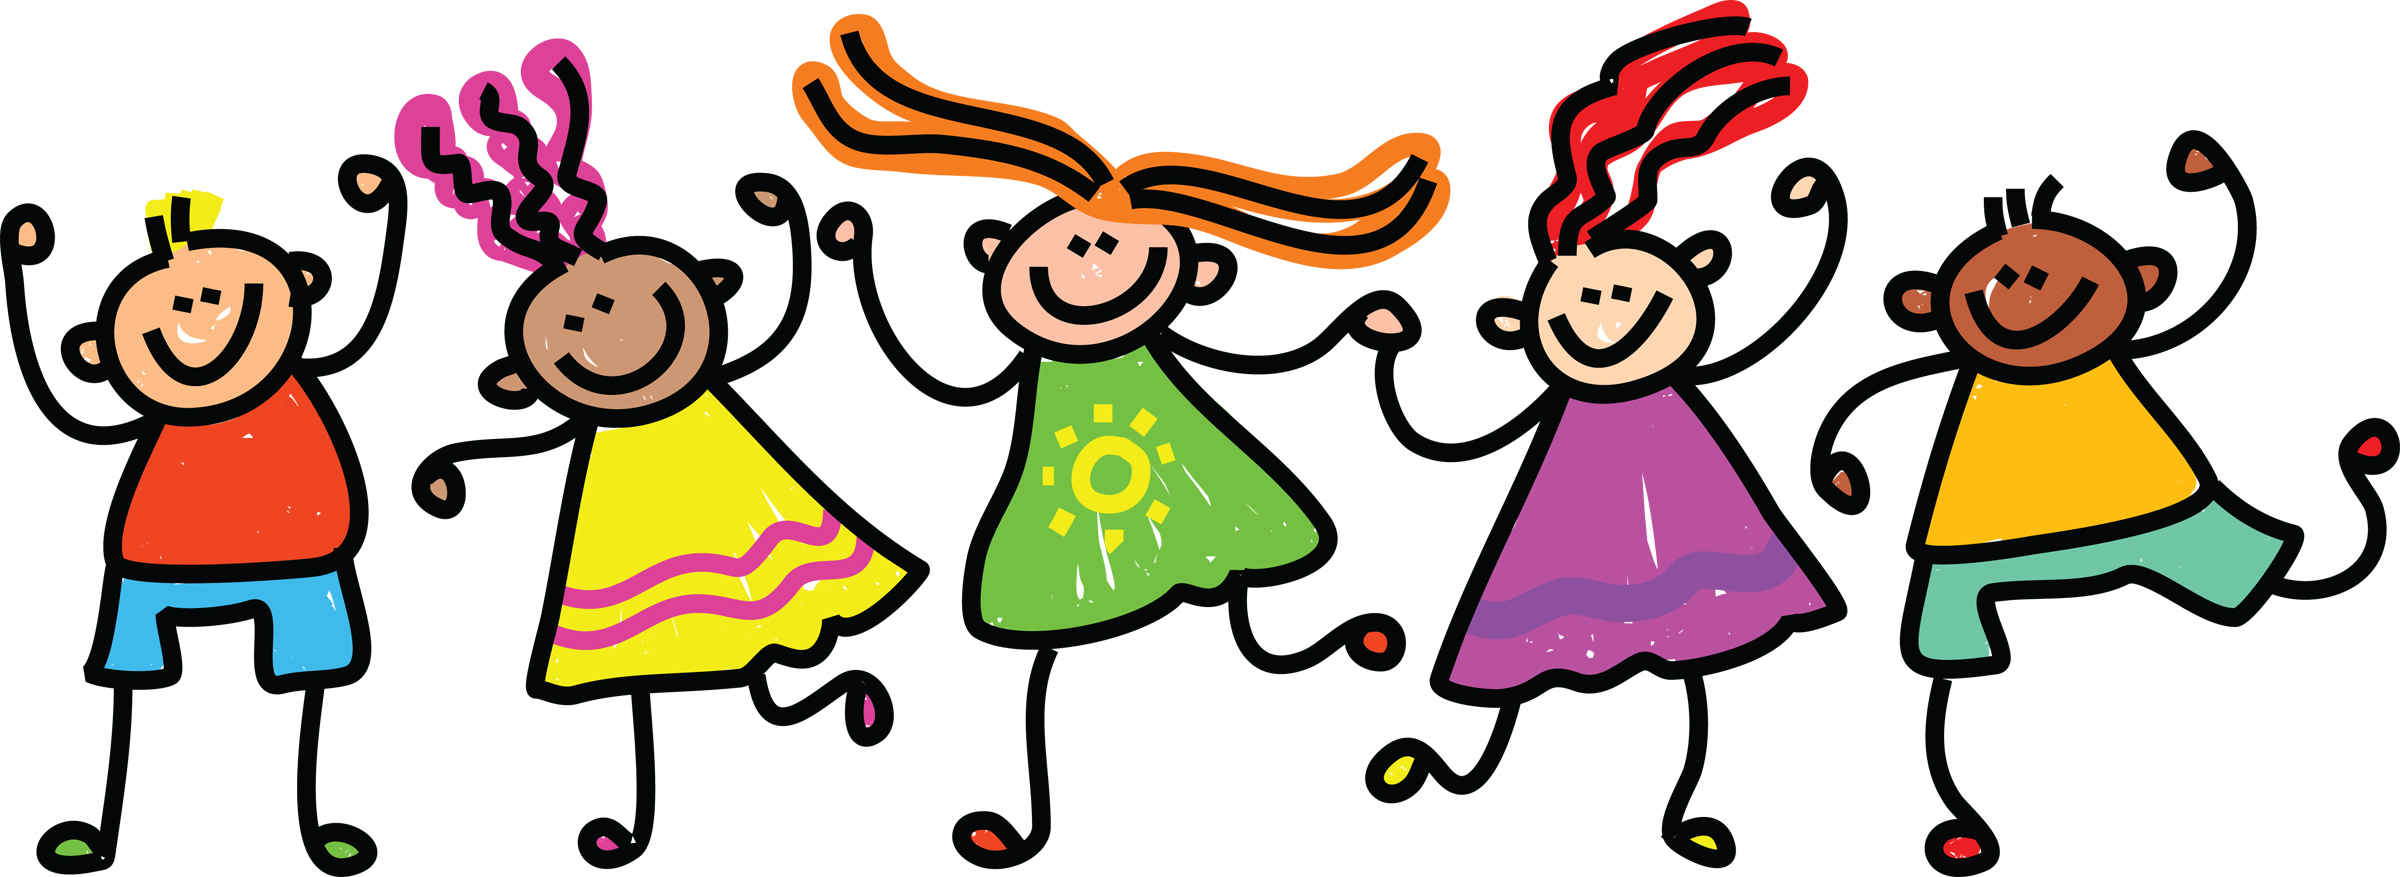 Group Of Kids Clipart Happy Kids Clipart-Group Of Kids Clipart Happy Kids Clipart Burr Pto-2